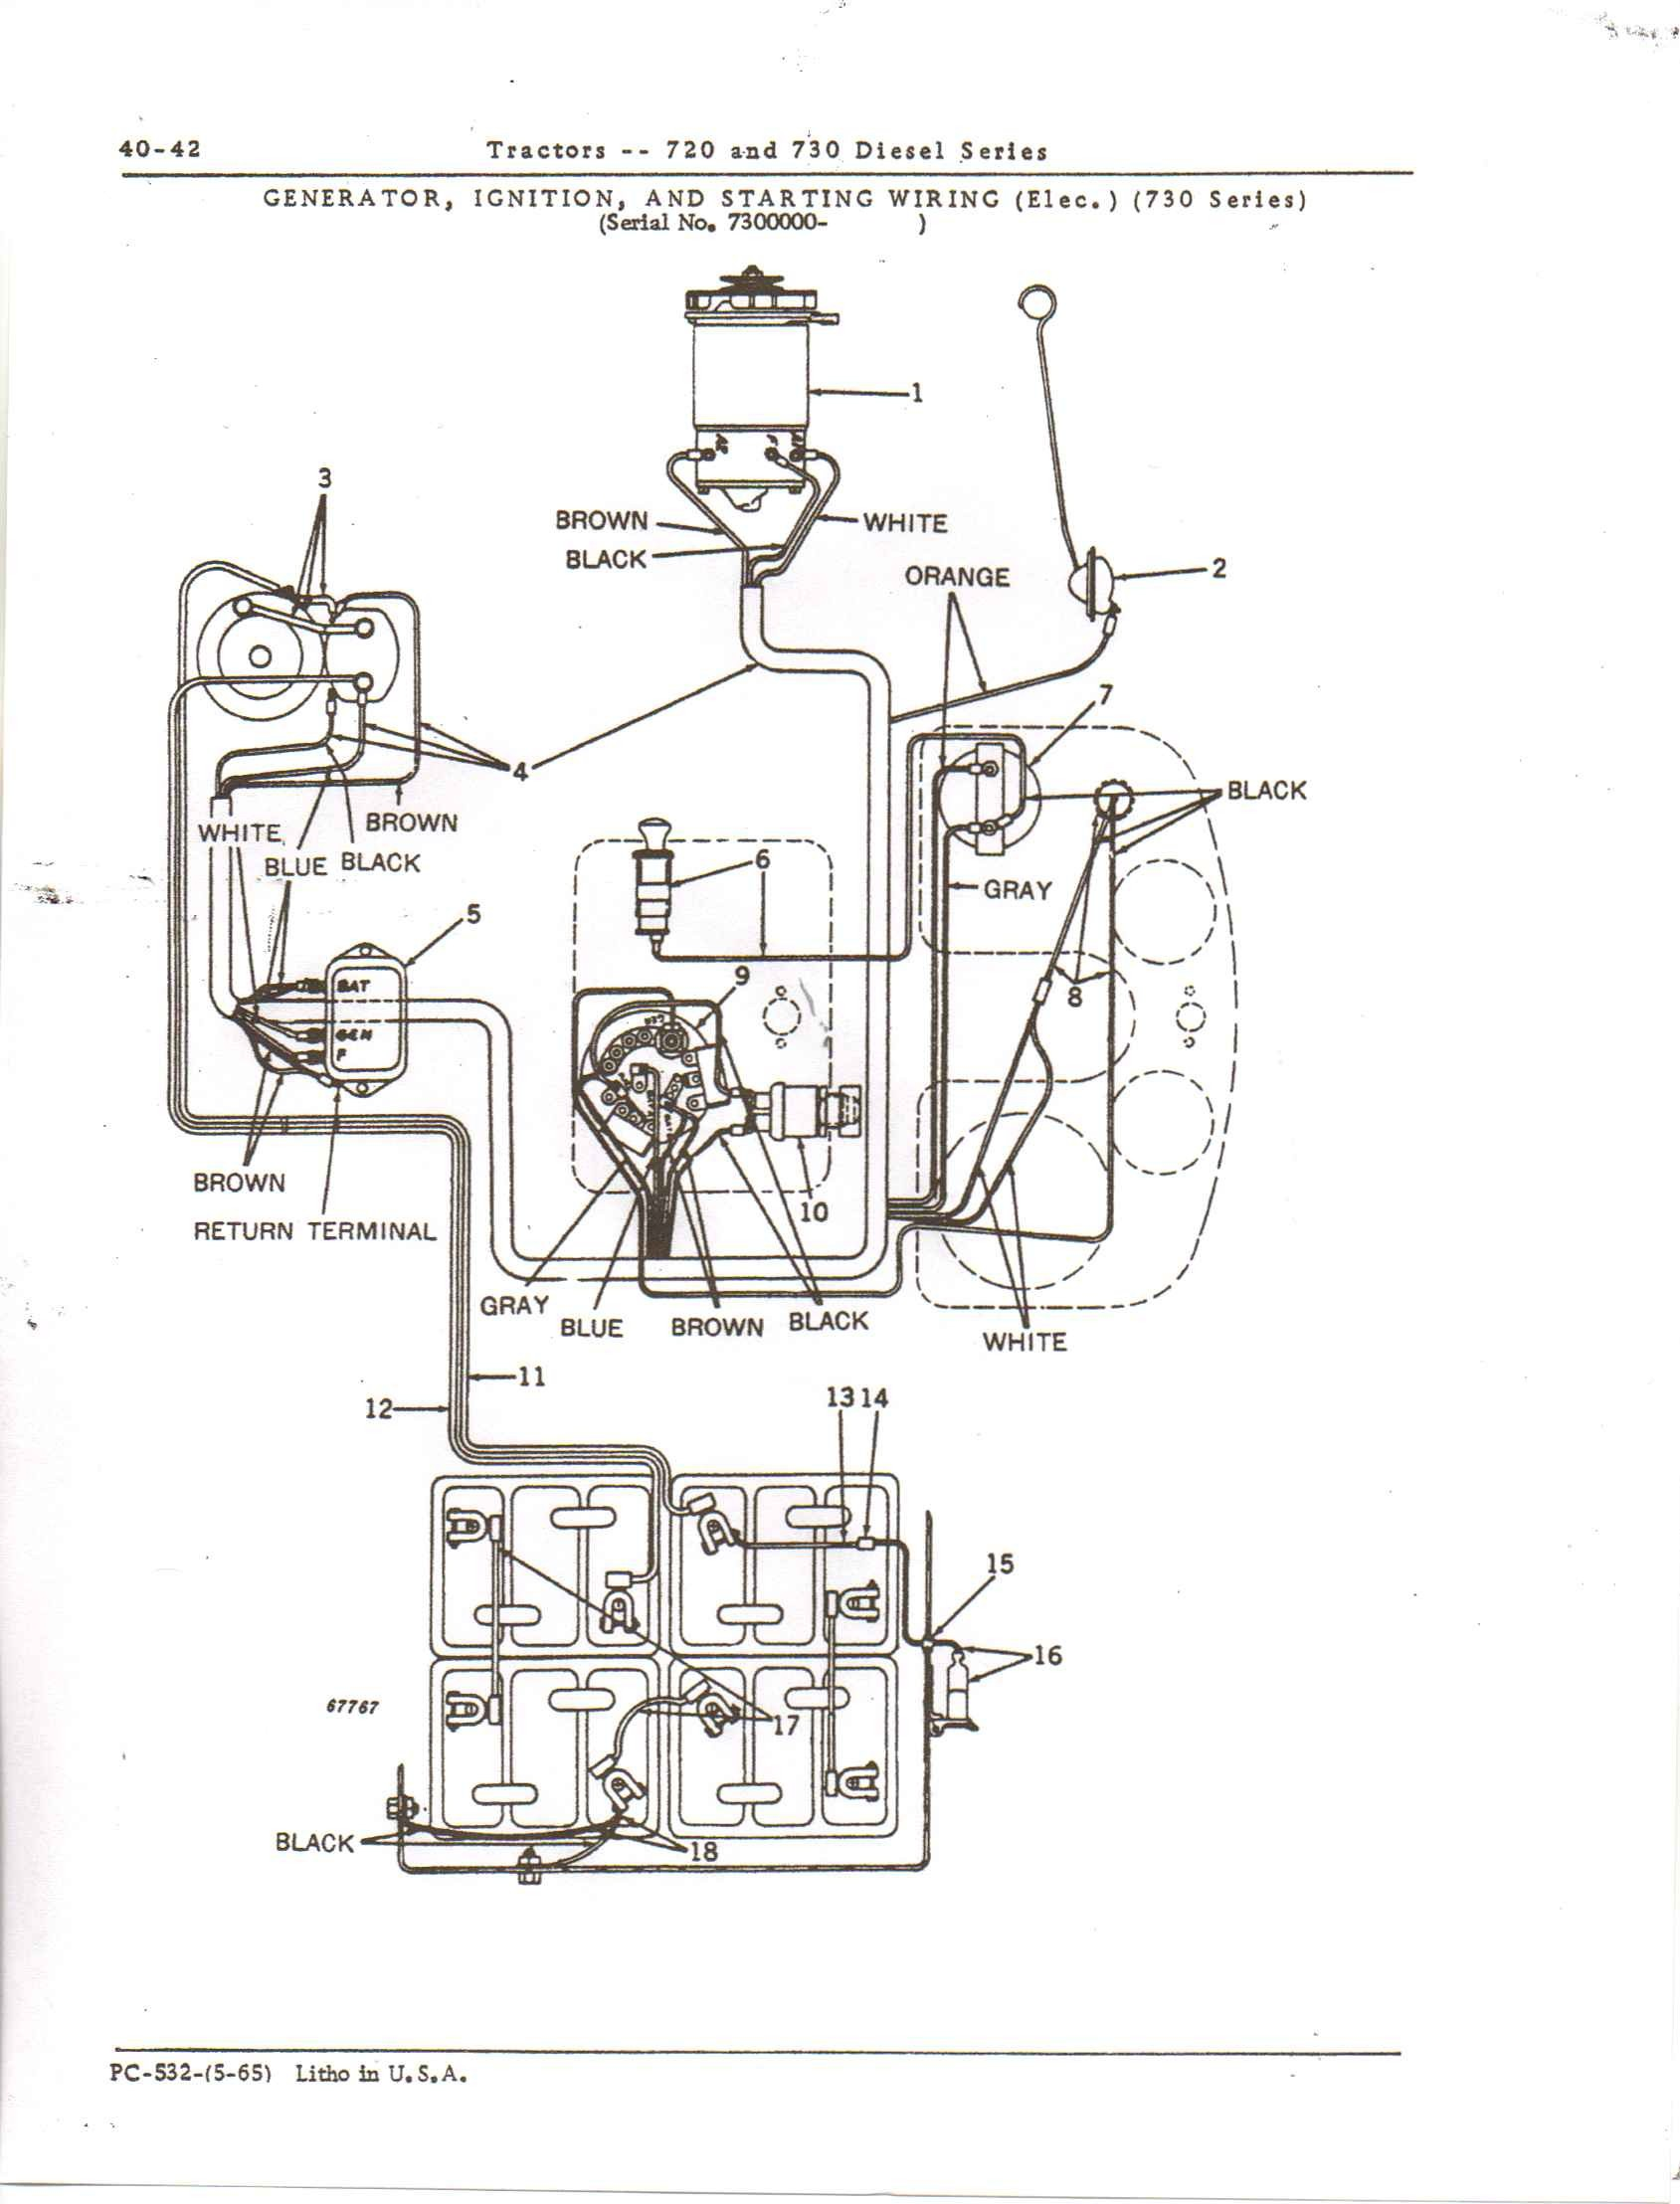 john deere l130 engine diagram ignition switch wiring for